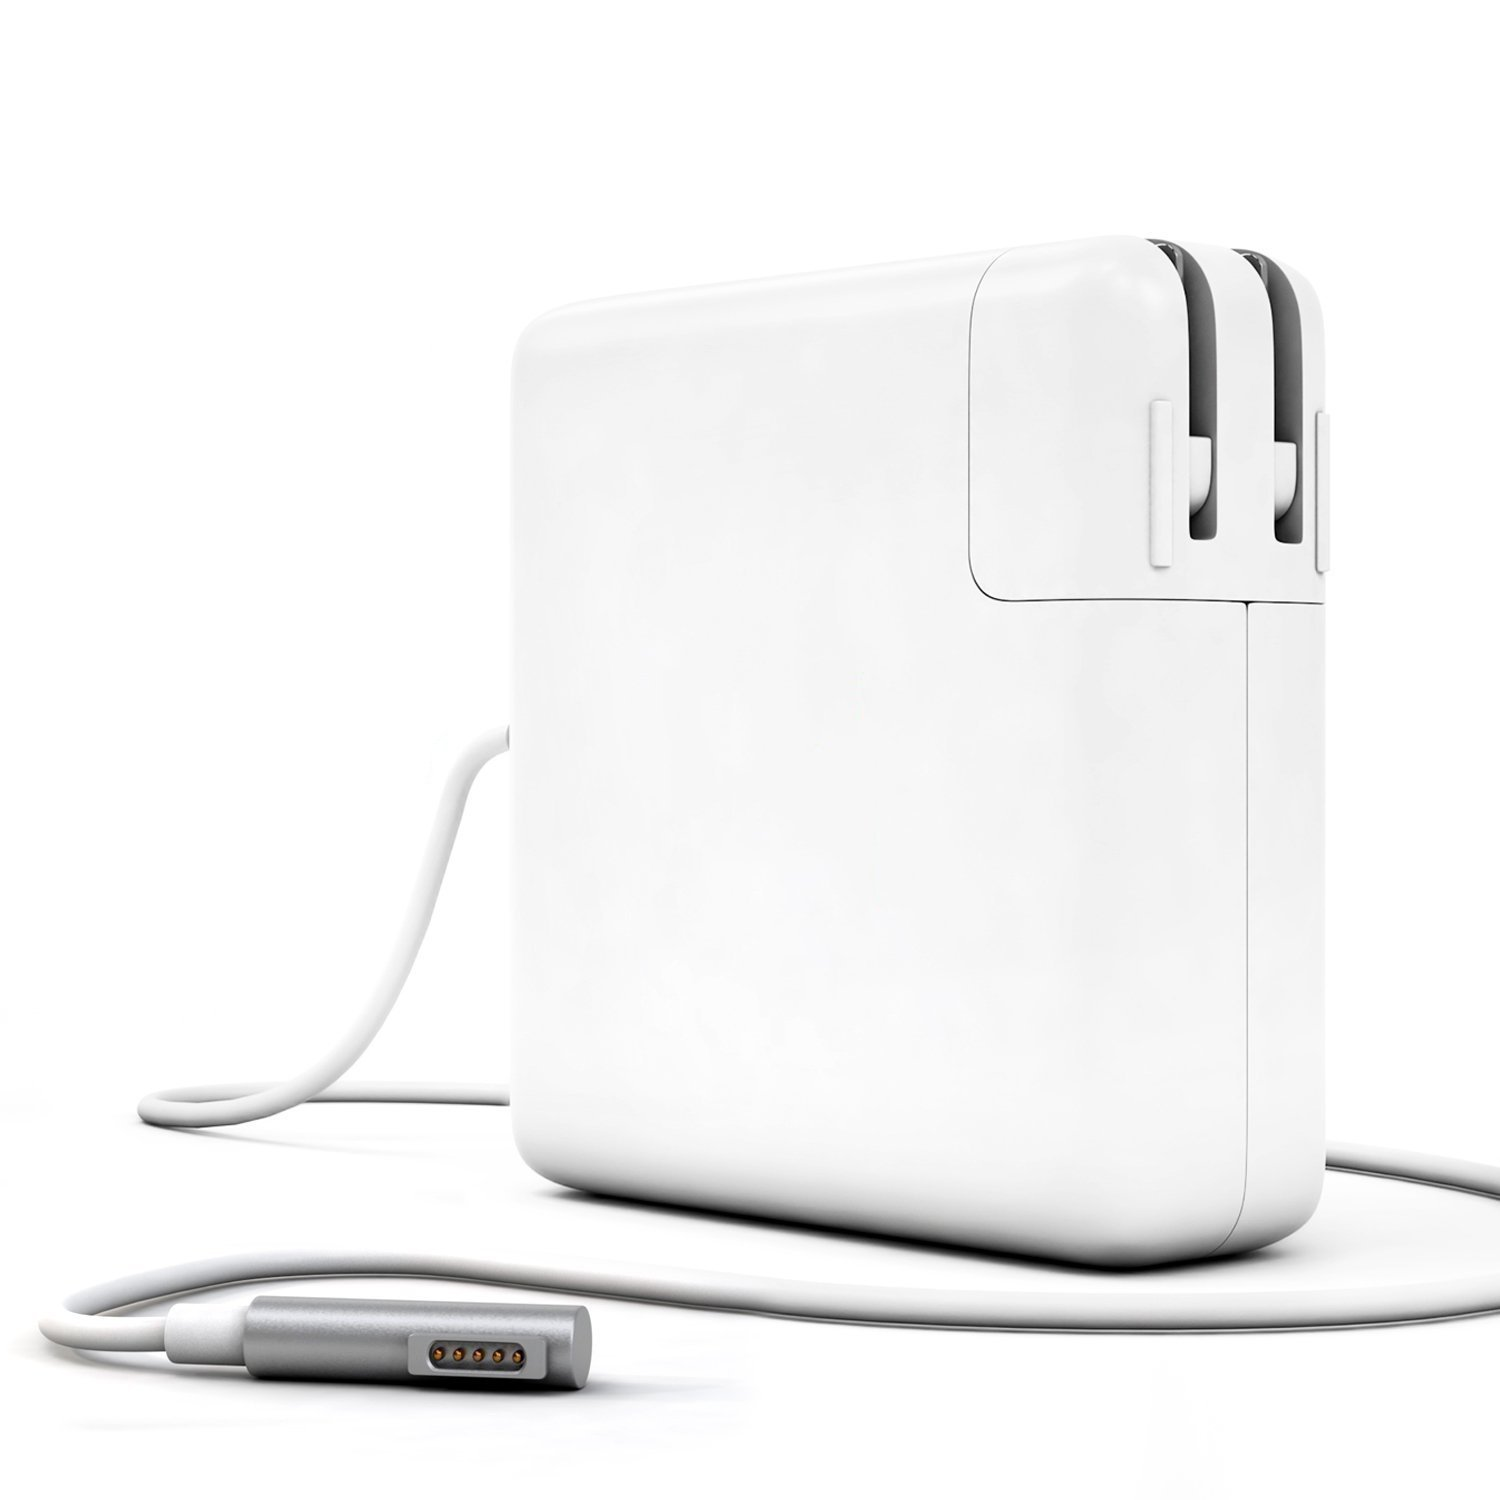 Mac Book Pro Charger, AC 85w Magsafe 2 Power Adapter for MacBook Pro 17/15/13 Inch Made After Mid 2012 by Niceep (Image #2)